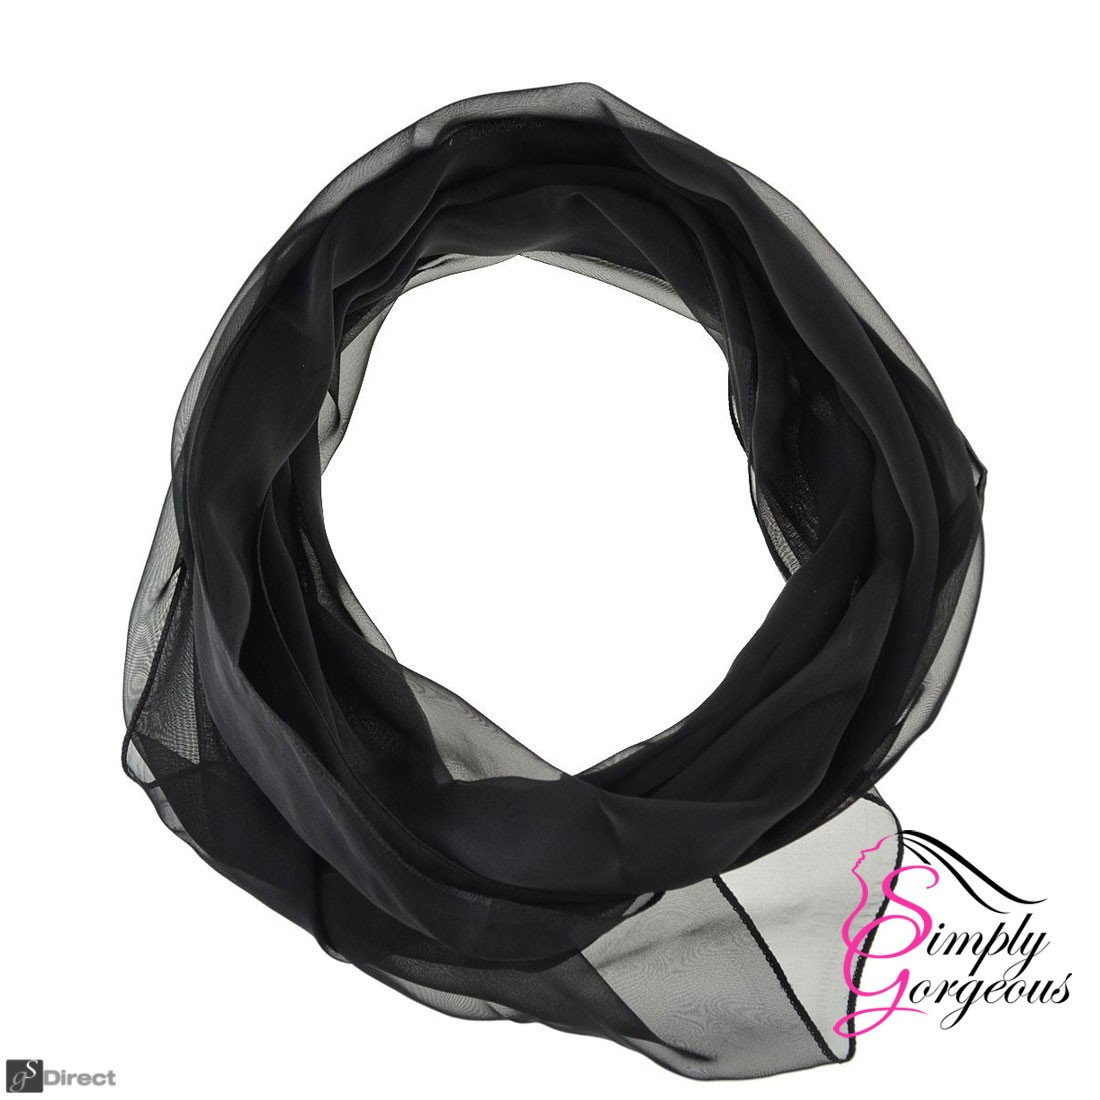 Classic Plain Chiffon Scarf Silk Feel Soft Neck lady Shawl Hijab Scarves - Black